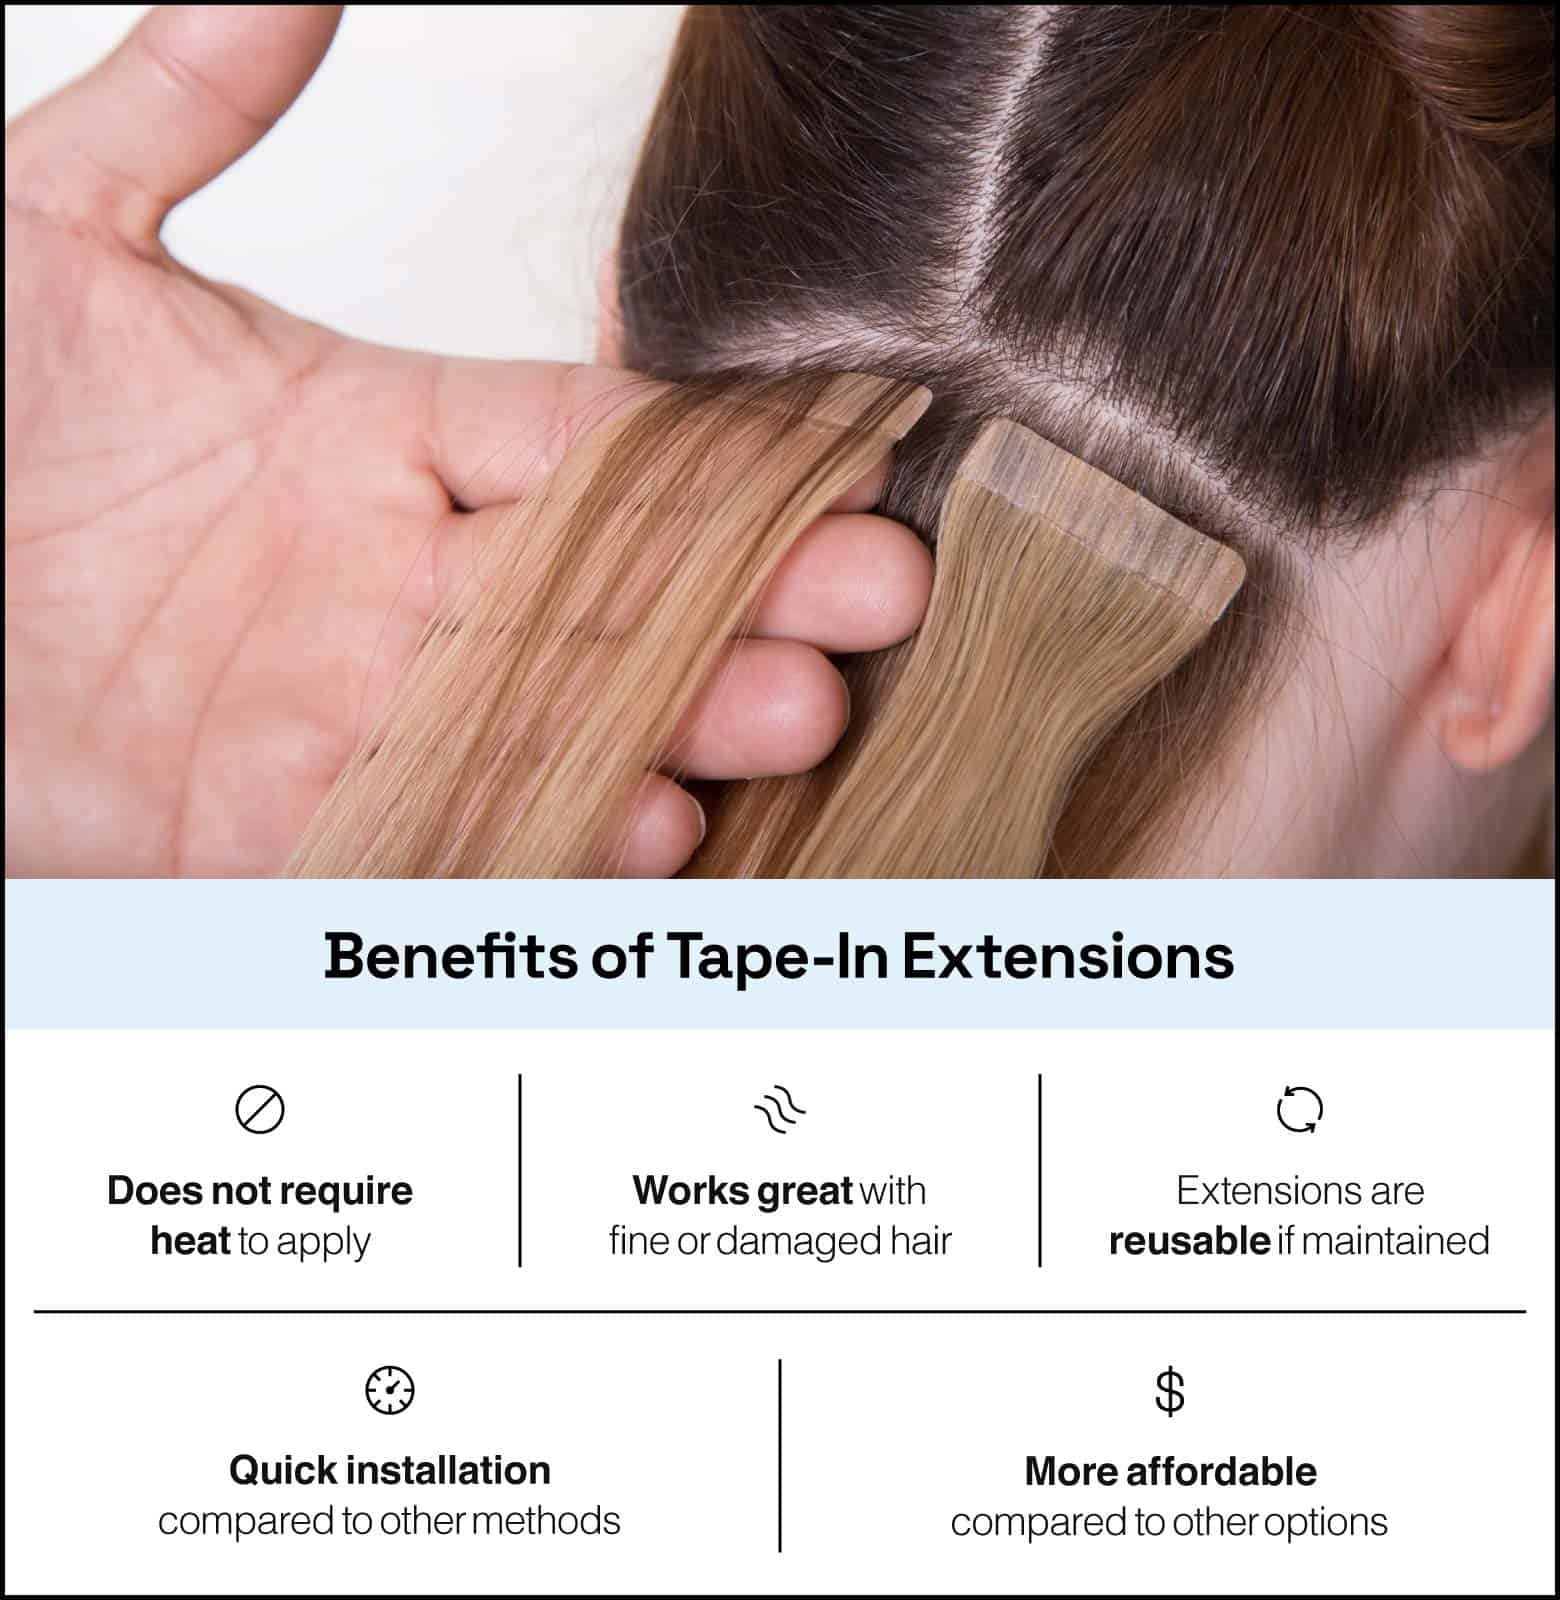 benefits of tape-in extensions